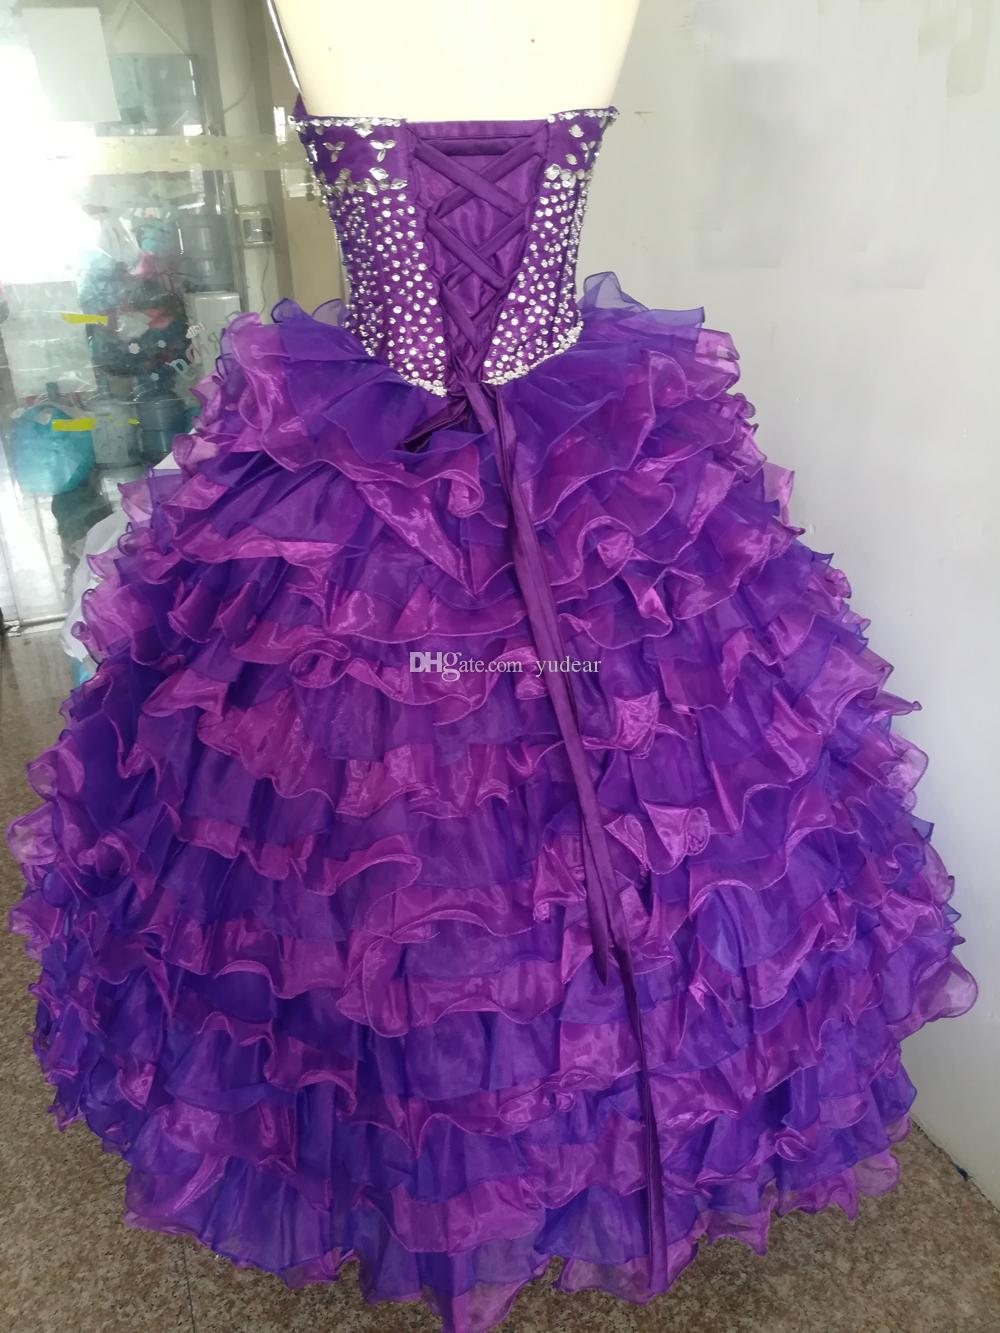 Fashion Cheap Purple 2019 Chic Quinceanera Dresses Sweet 15 Ball Gown Cascading Ruffles Debutante Dresses Draped and Rhinestones Party Gowns